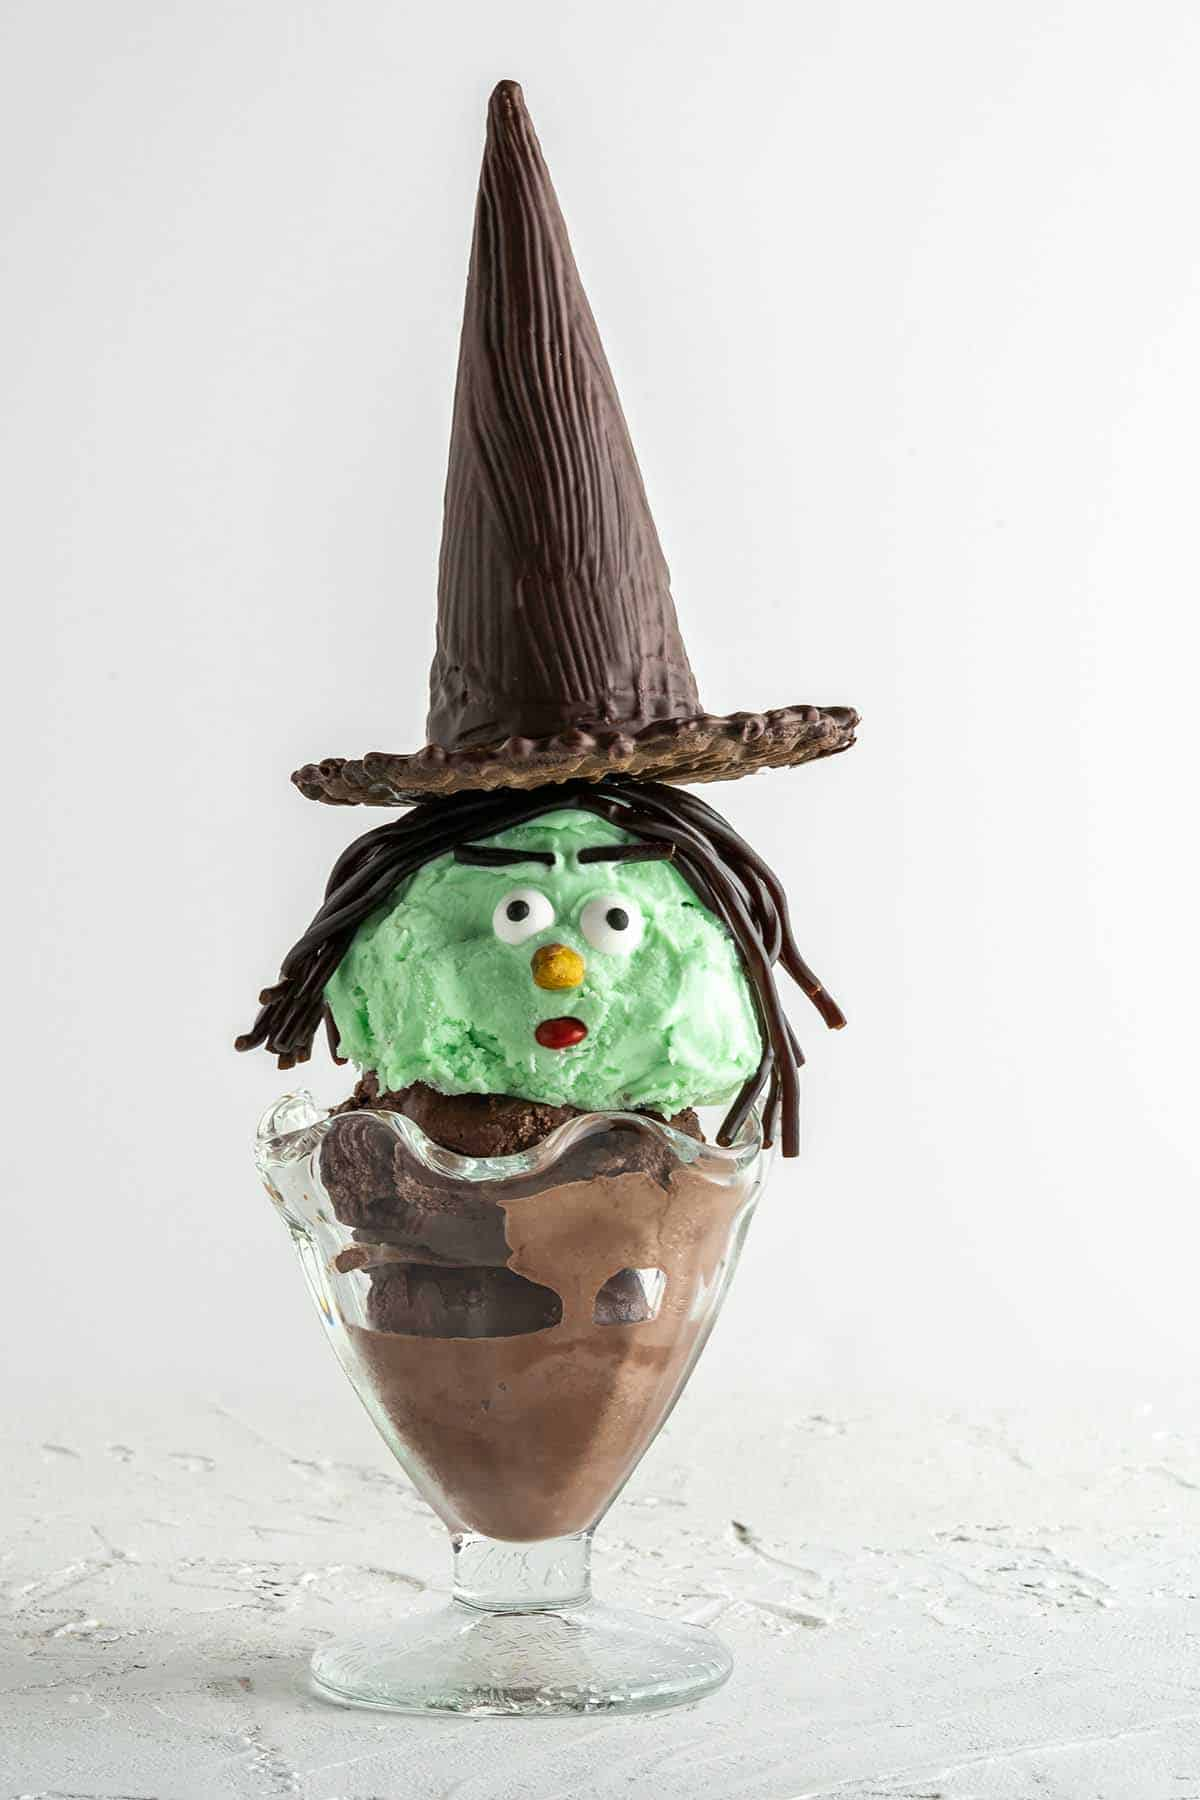 an ice cream sundae with a scoop of green ice cream decorated with candy to look like a witch face. the sundae has a witch hat made with a chocolate covered cone